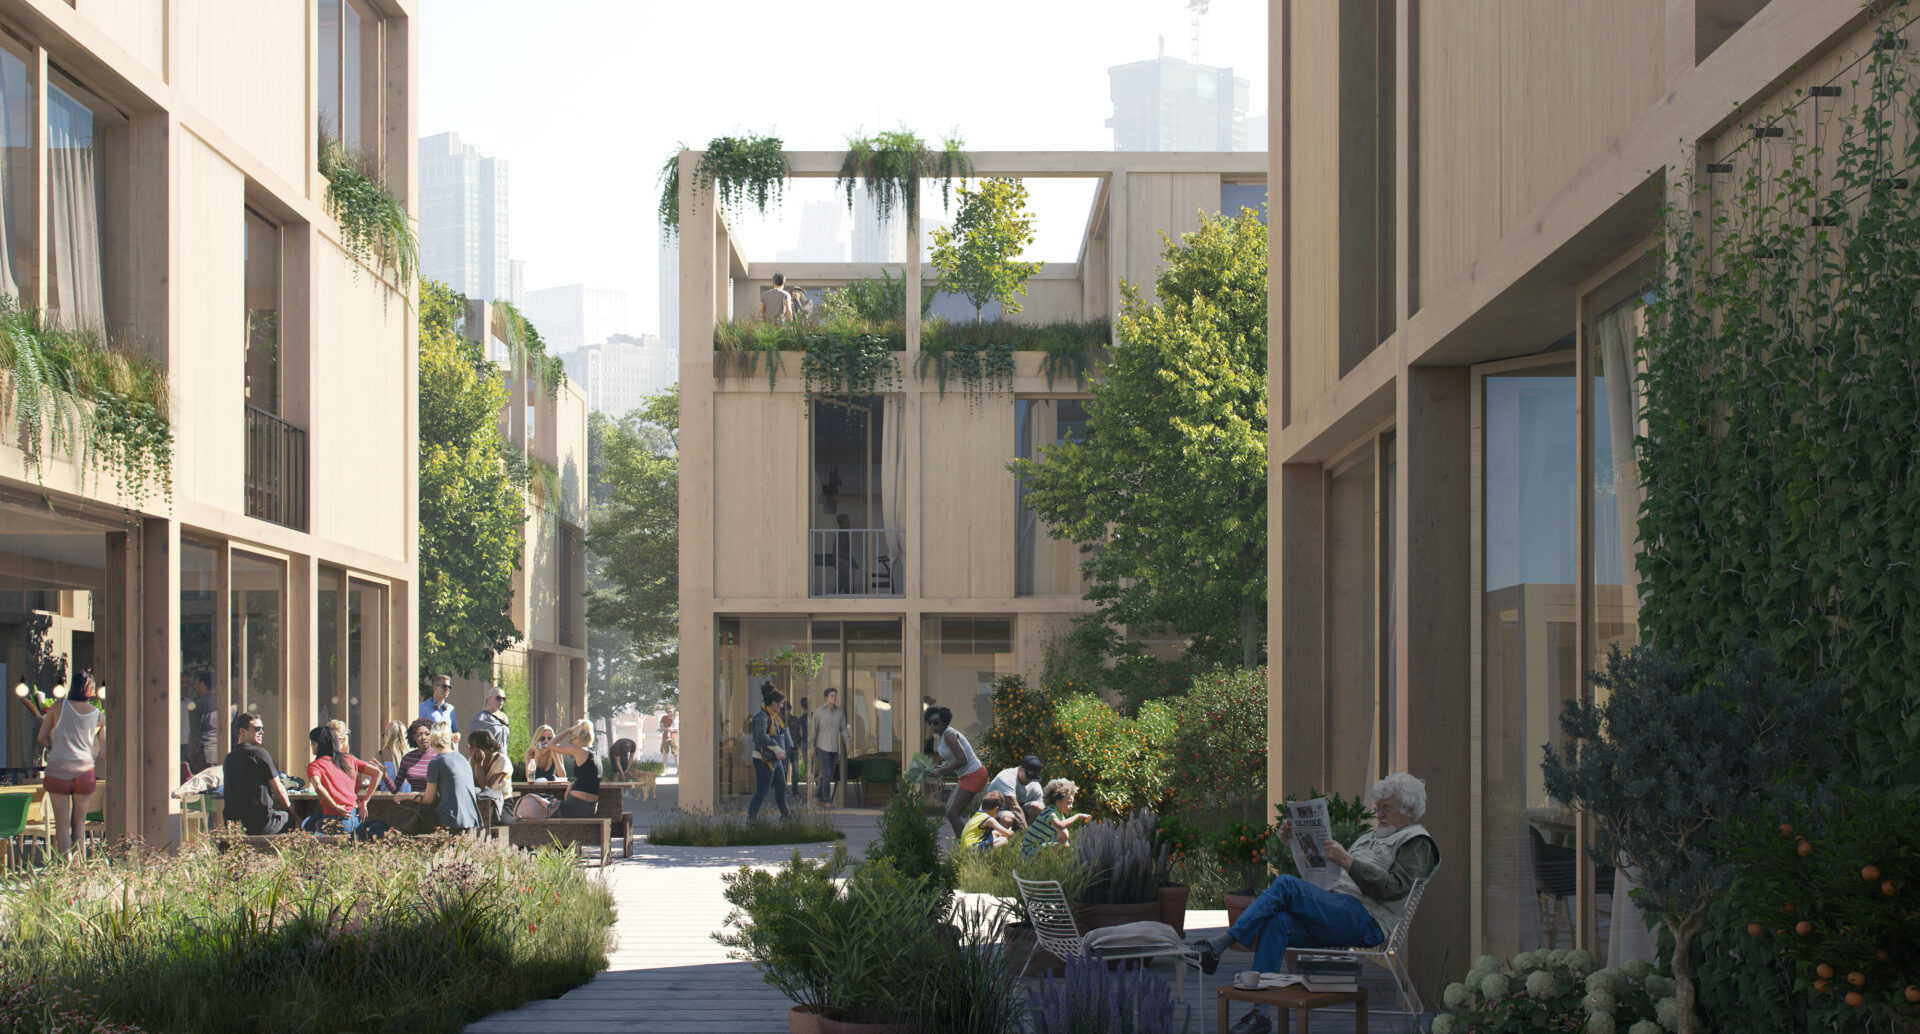 The Urban Village Project